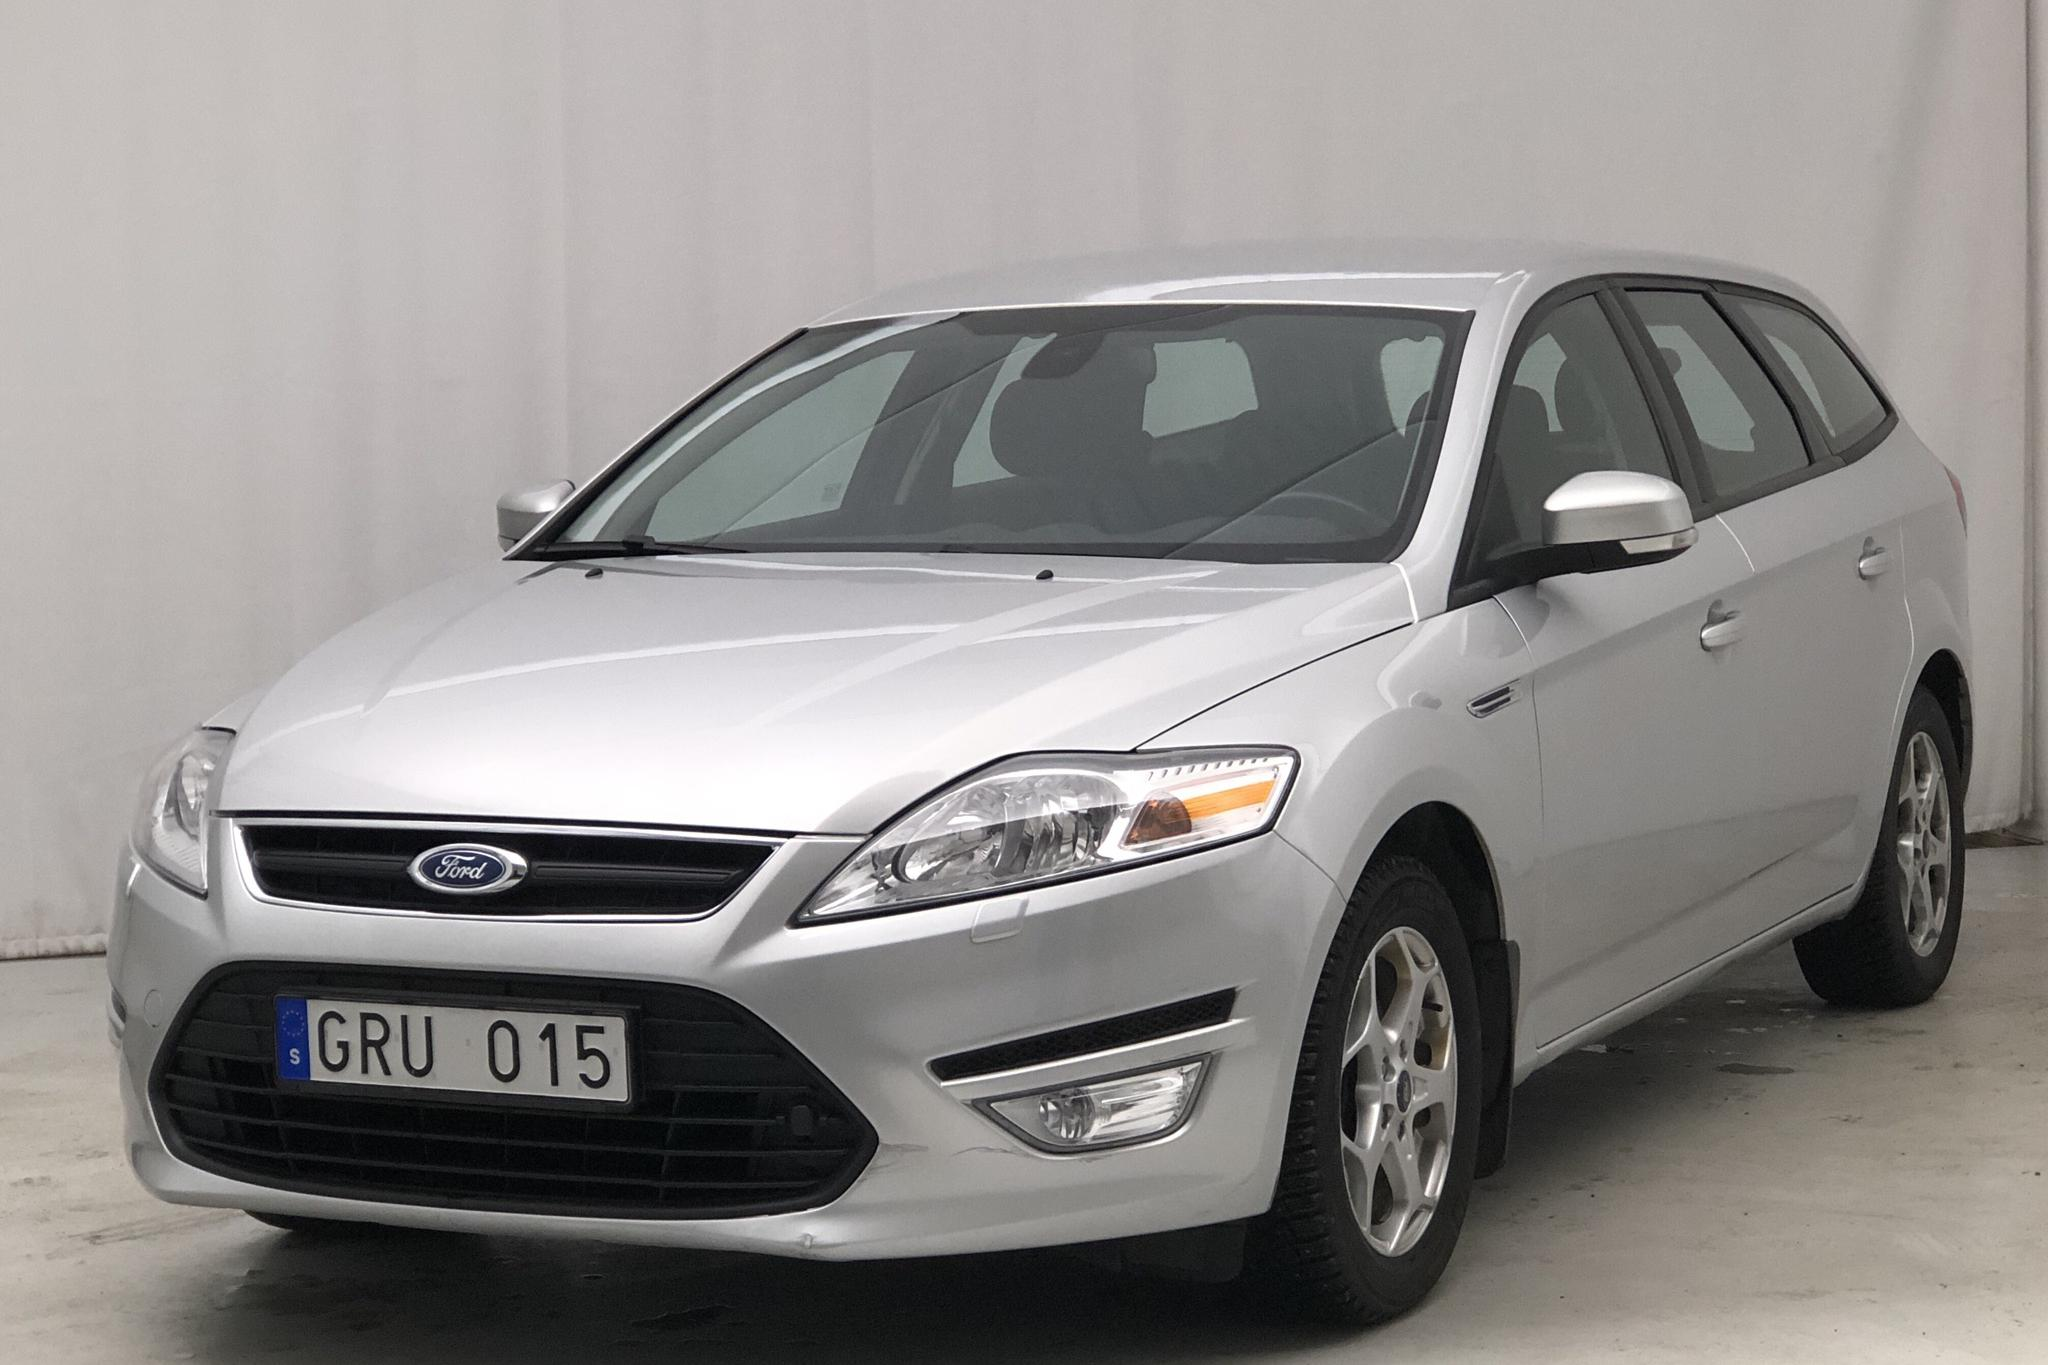 Ford Mondeo 2.0 Flexifuel Kombi (145hk) - 119 900 km - Manual - gray - 2011